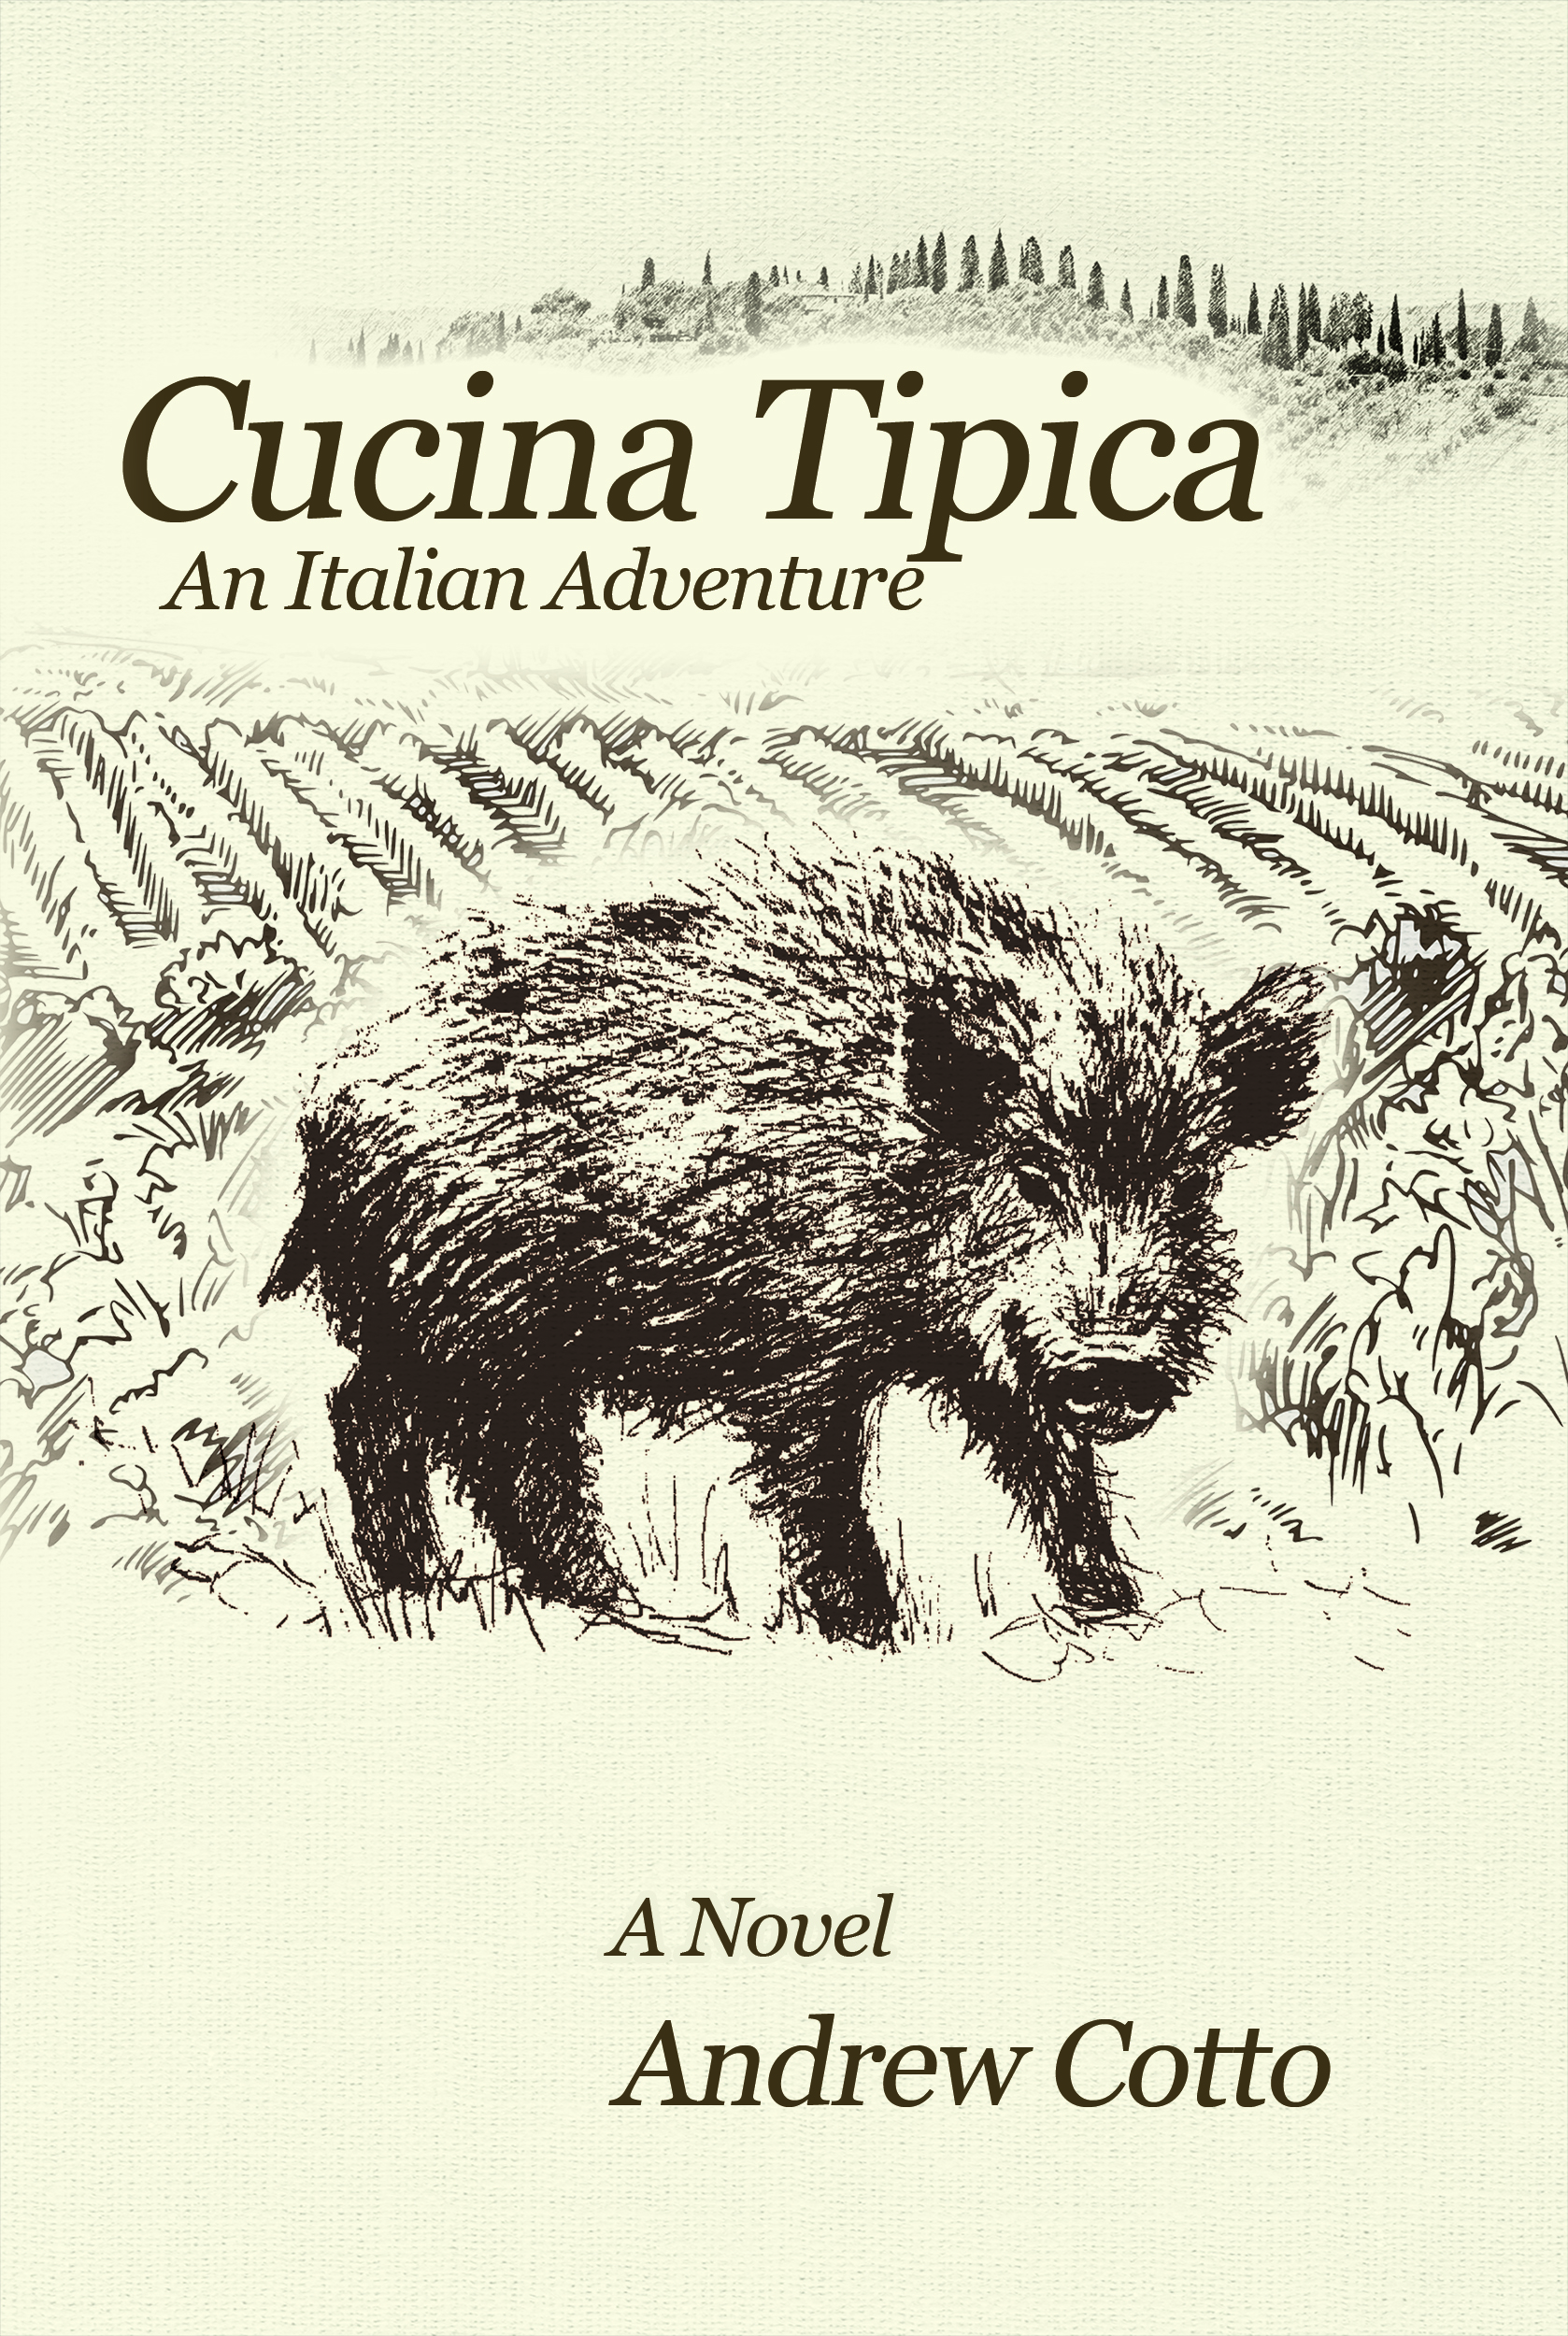 Mammaprada :: Cucina Tipica; An Inspiring Italian Expat Adventure With Andrew Cotto